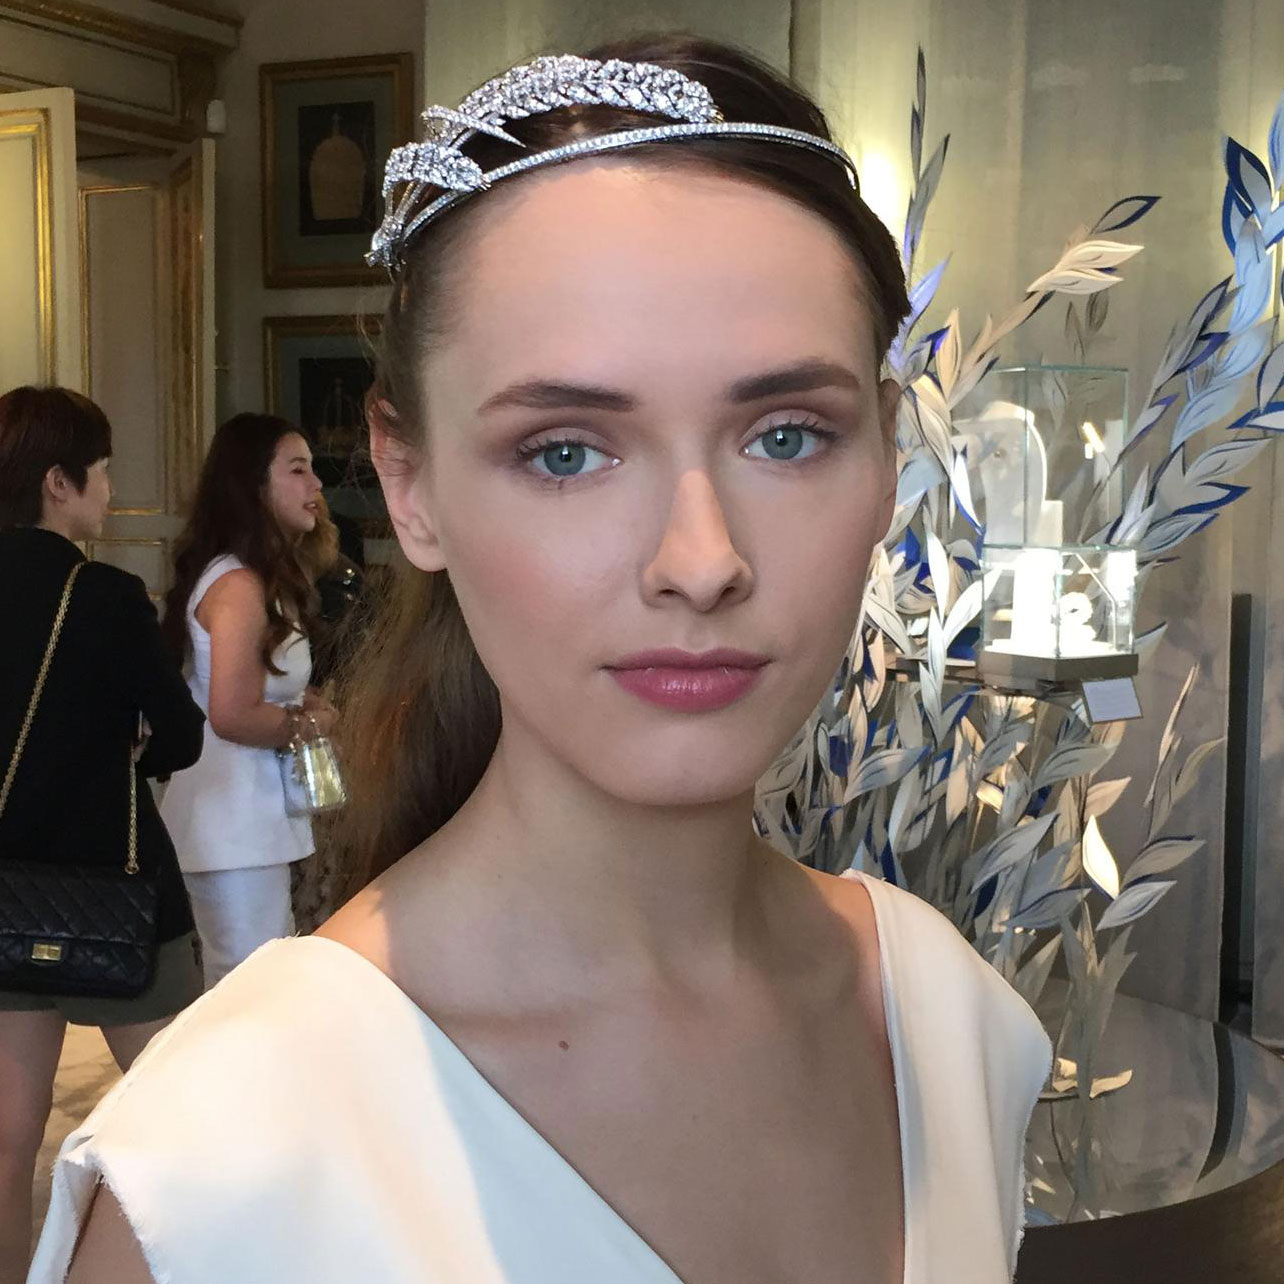 Wedding tiaras: expert advice on how to choose the perfect headpiece